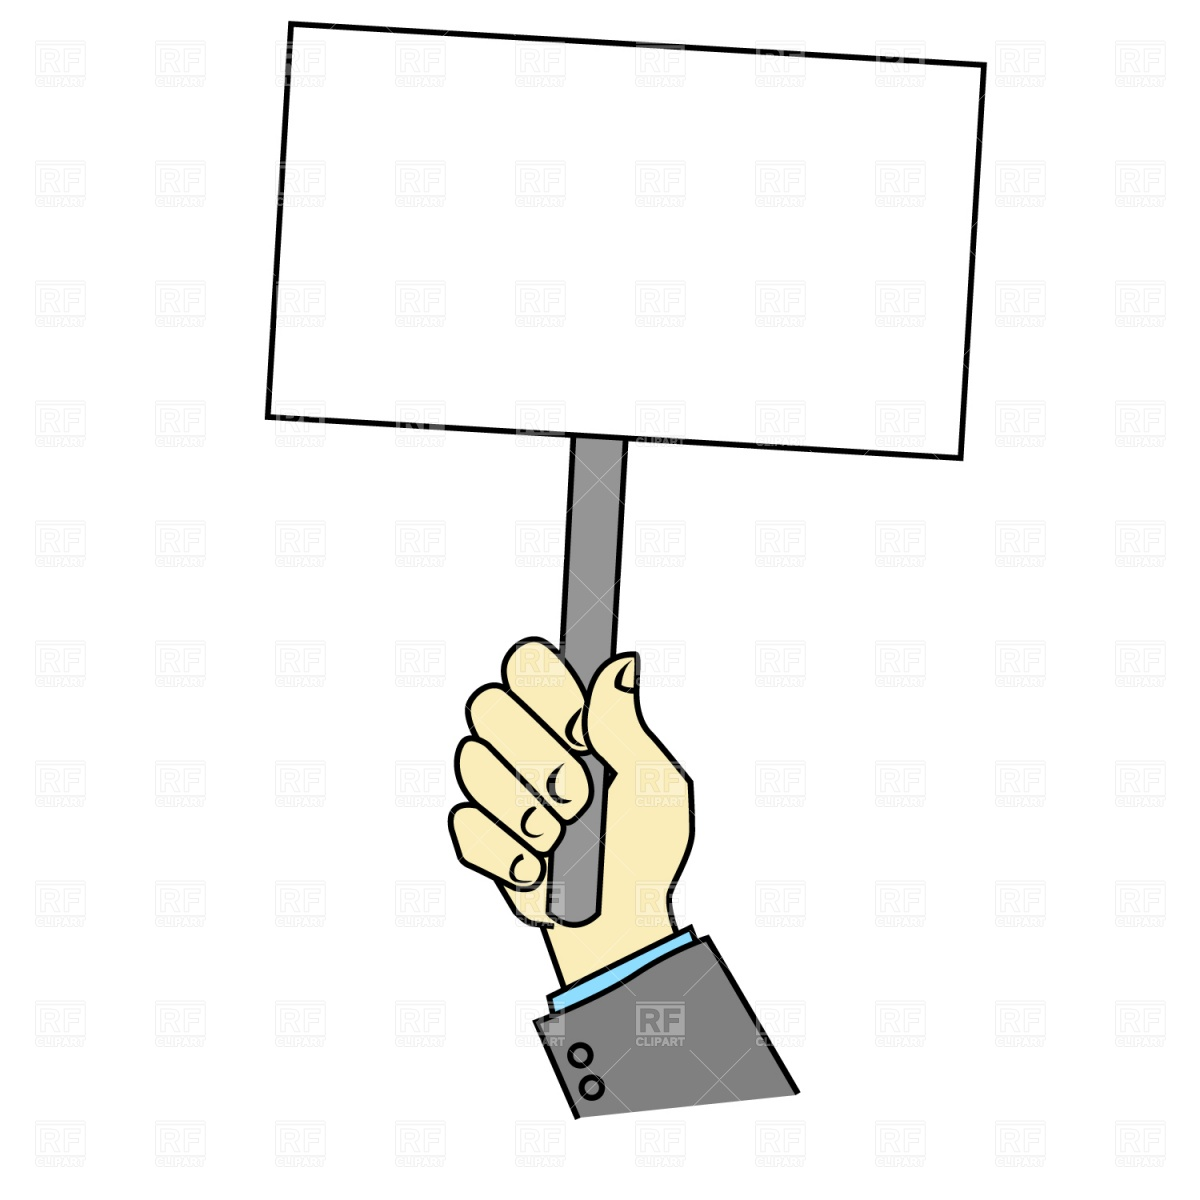 Placard Vector Image #1680.